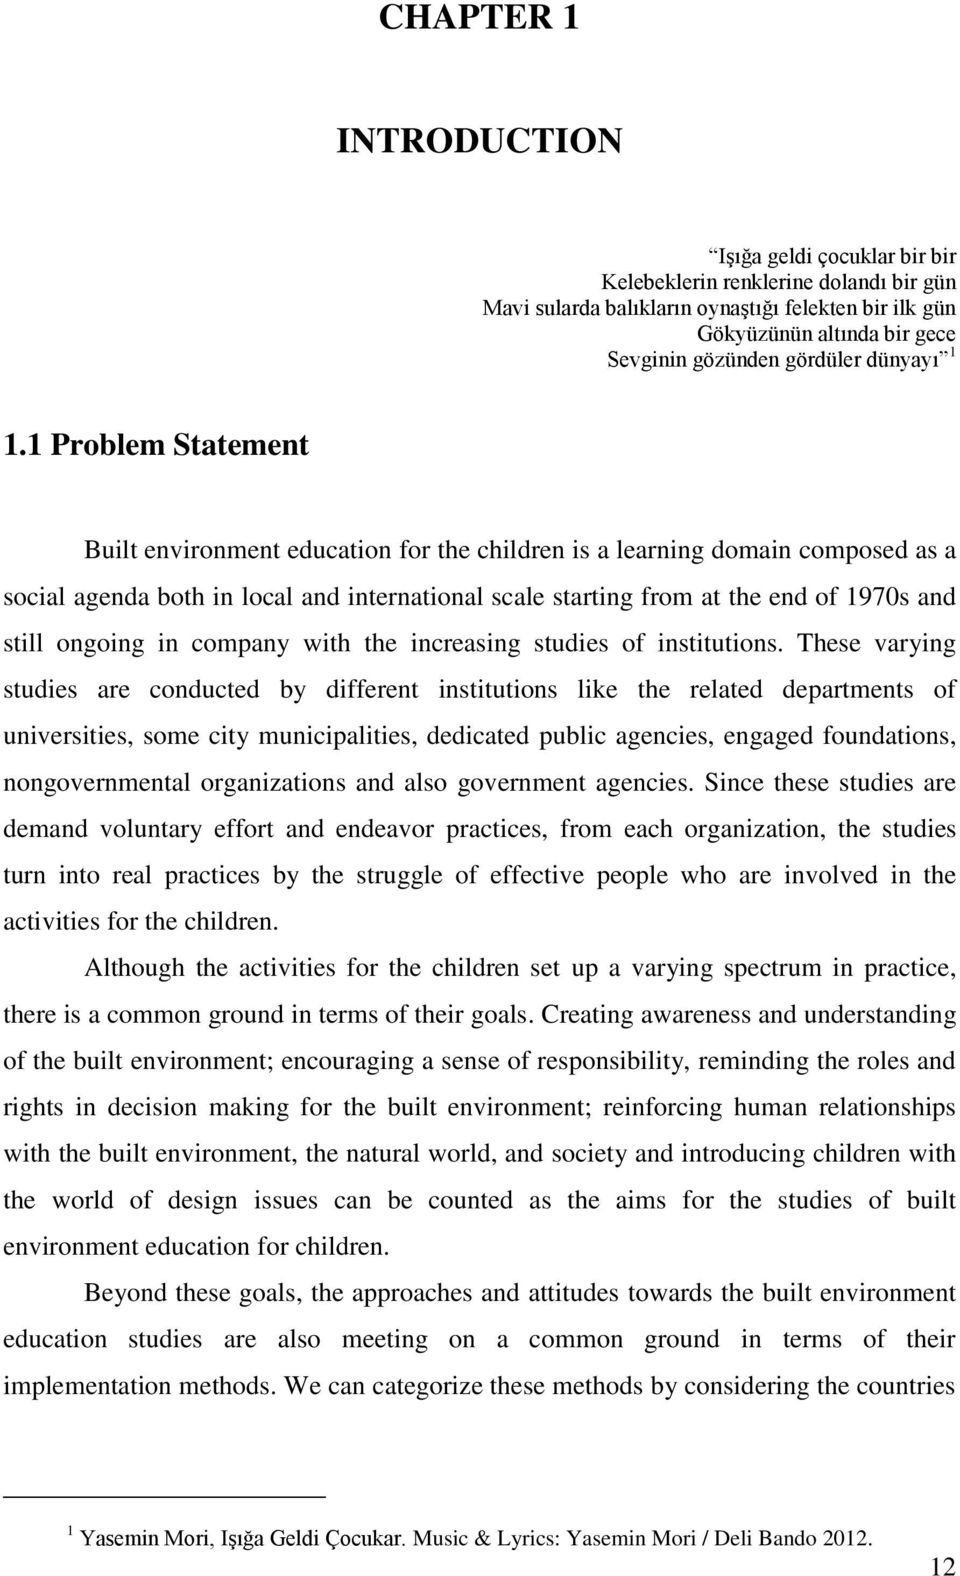 1 Problem Statement Built environment education for the children is a learning domain composed as a social agenda both in local and international scale starting from at the end of 1970s and still